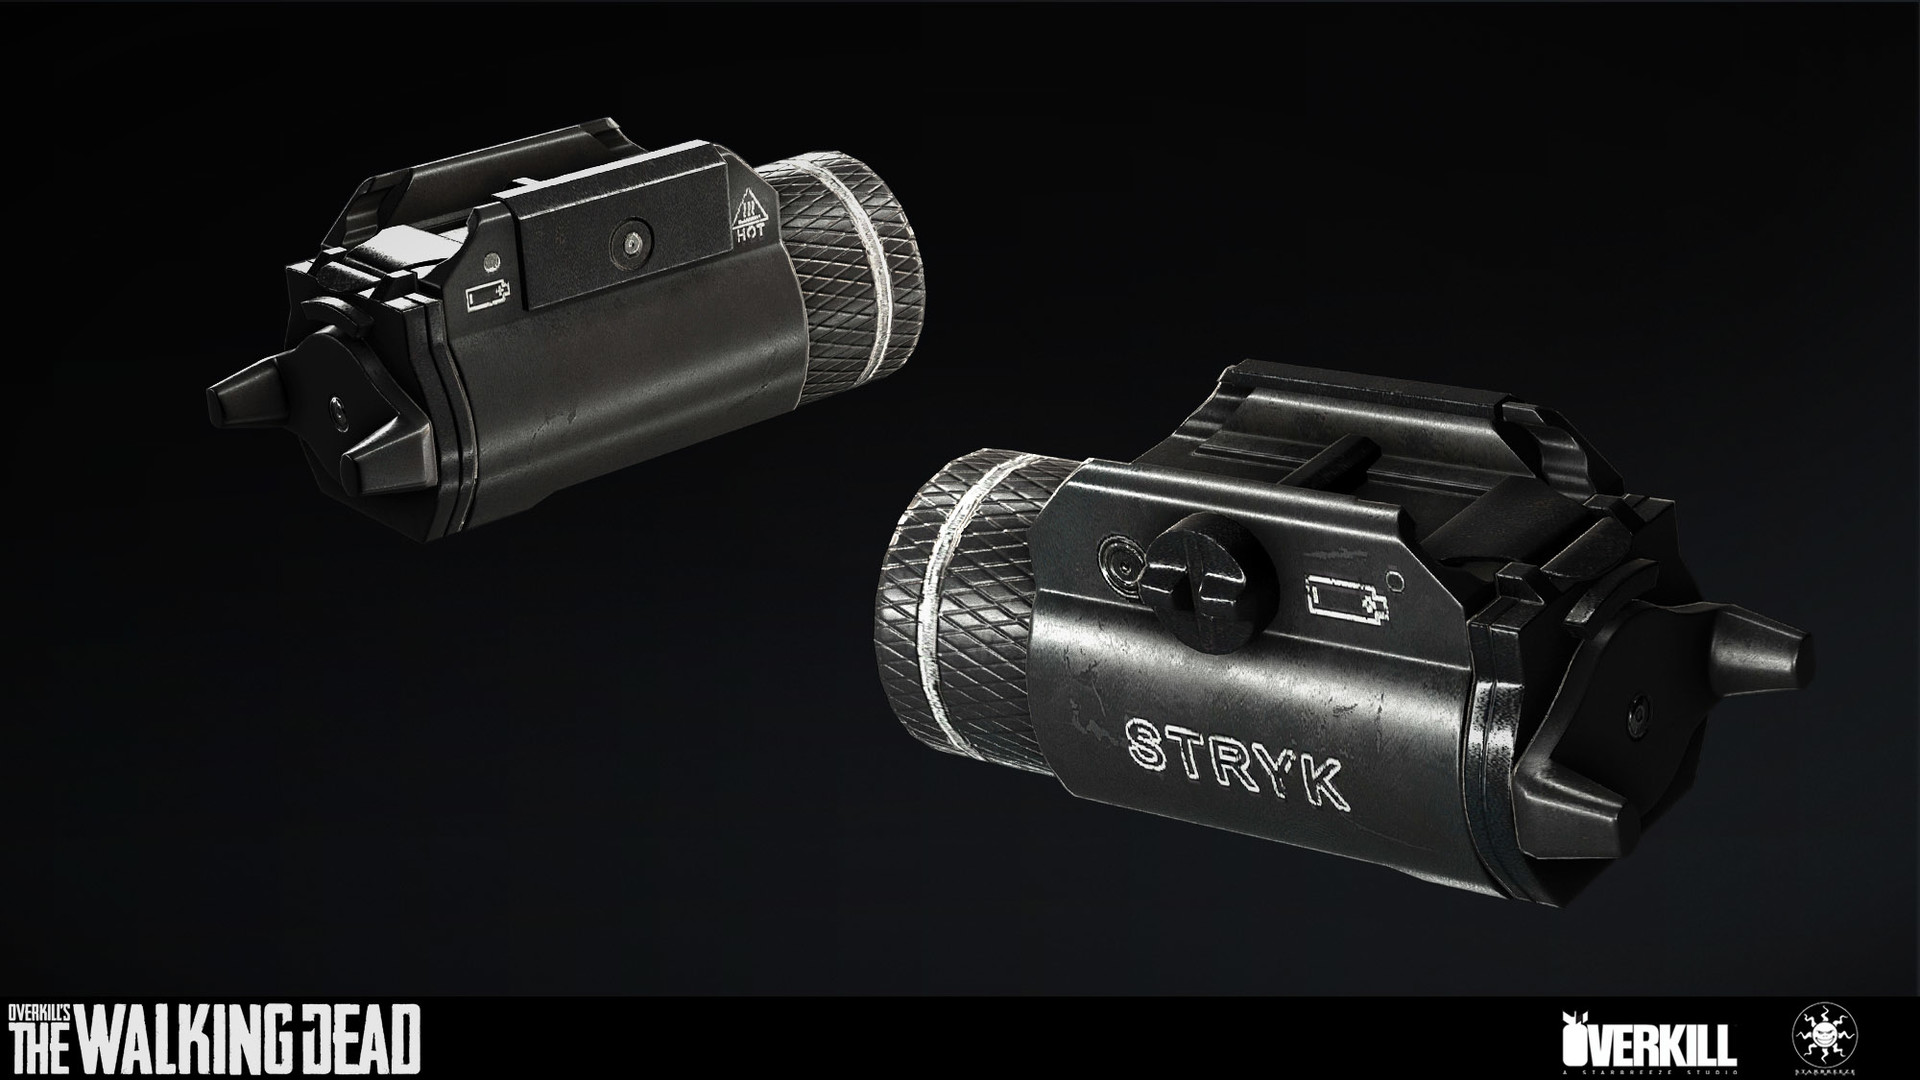 Maxi vazquez pistol flashlight